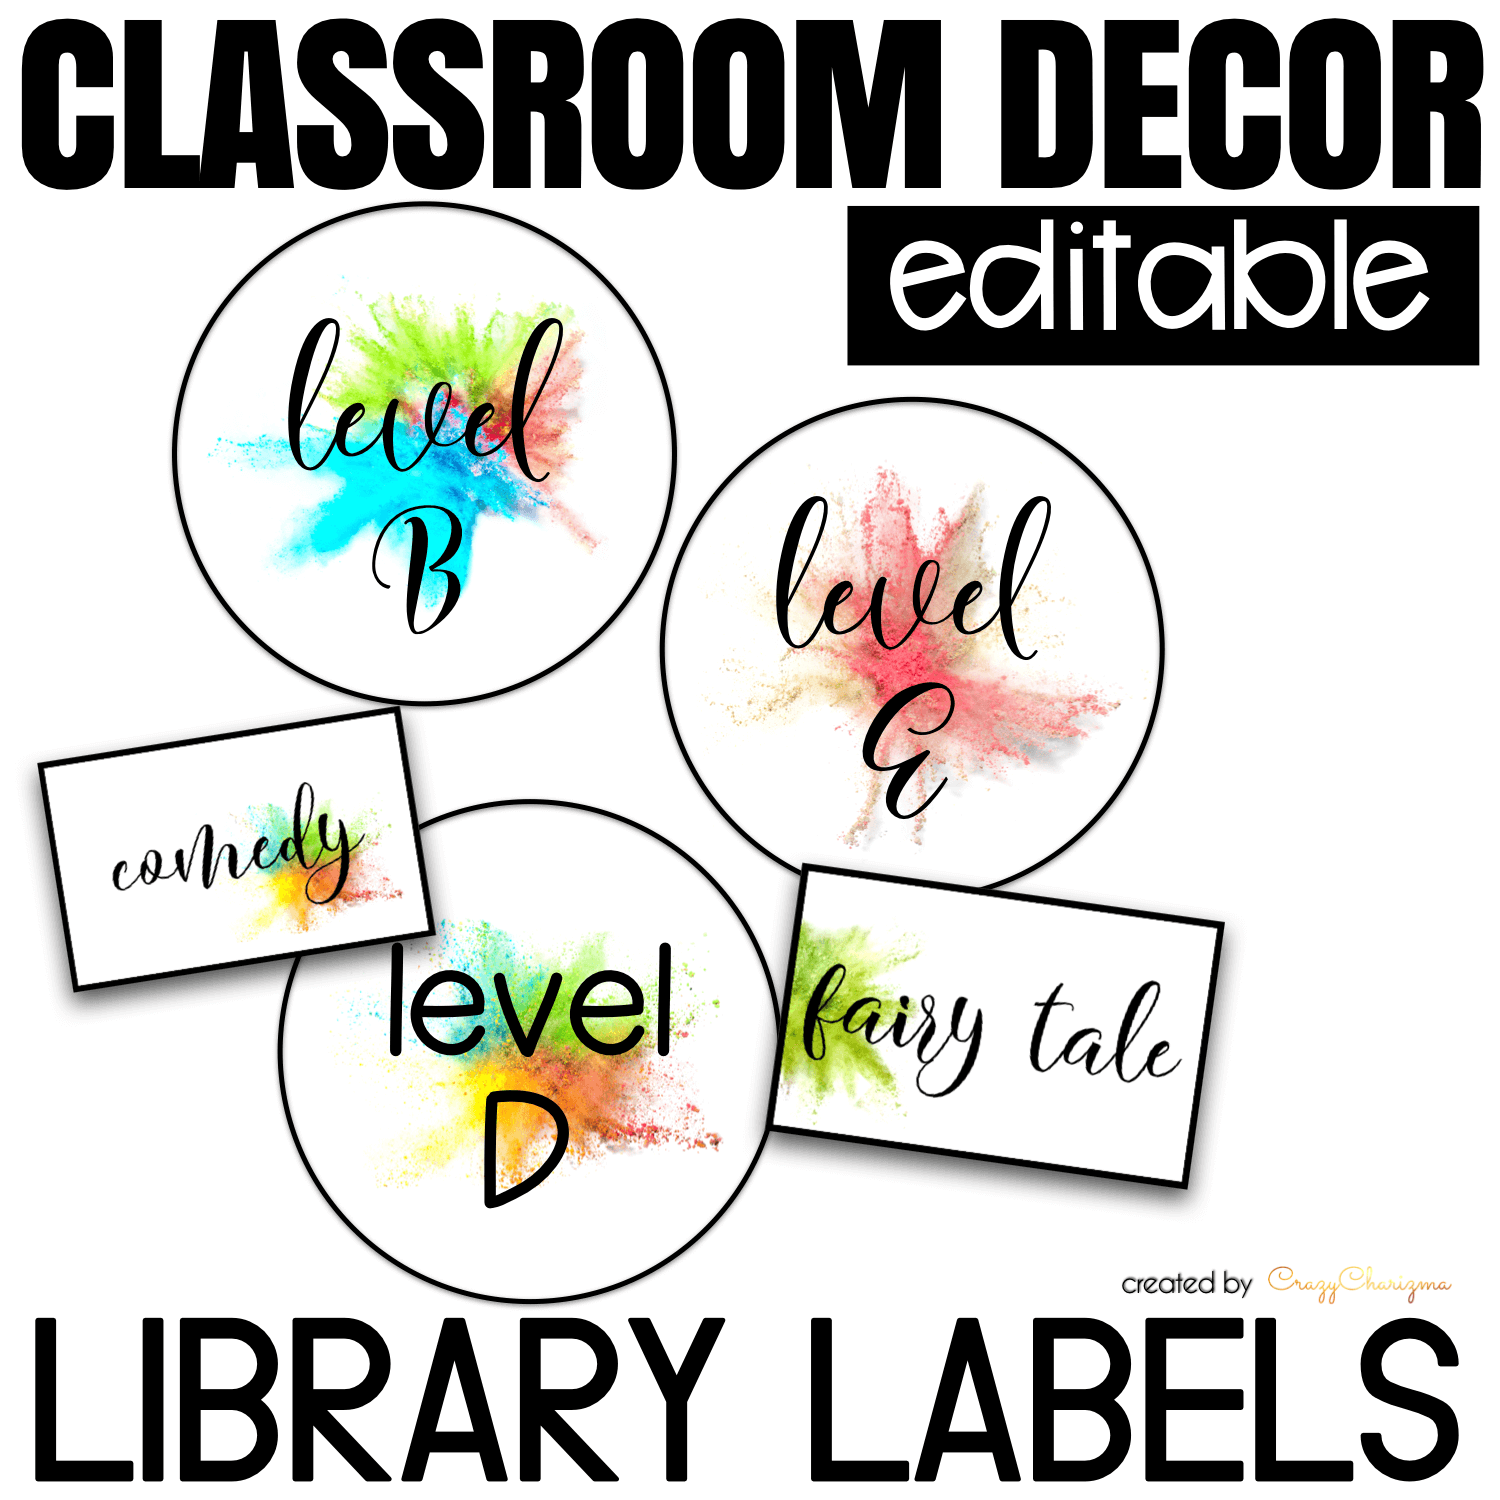 Looking for bright and clear EDITABLE library labels? Spice your classroom with this visually appealing SPLASH classroom decor!